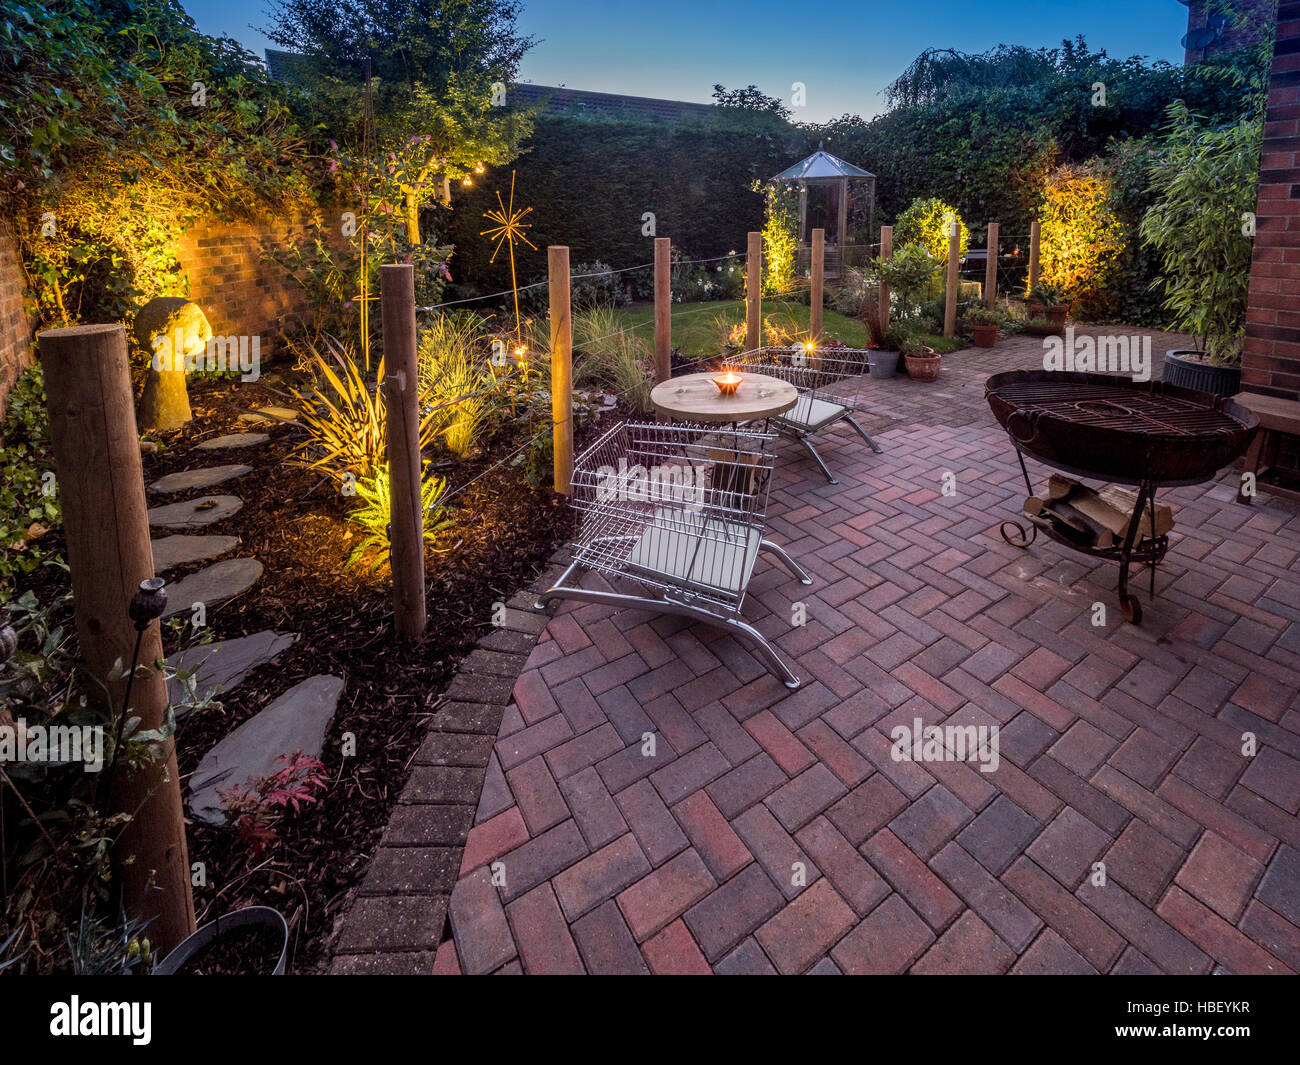 Modern garden design at dusk with contemporary wire shopping trolley chairs for seating and large Kadai firebowl Stock Photo